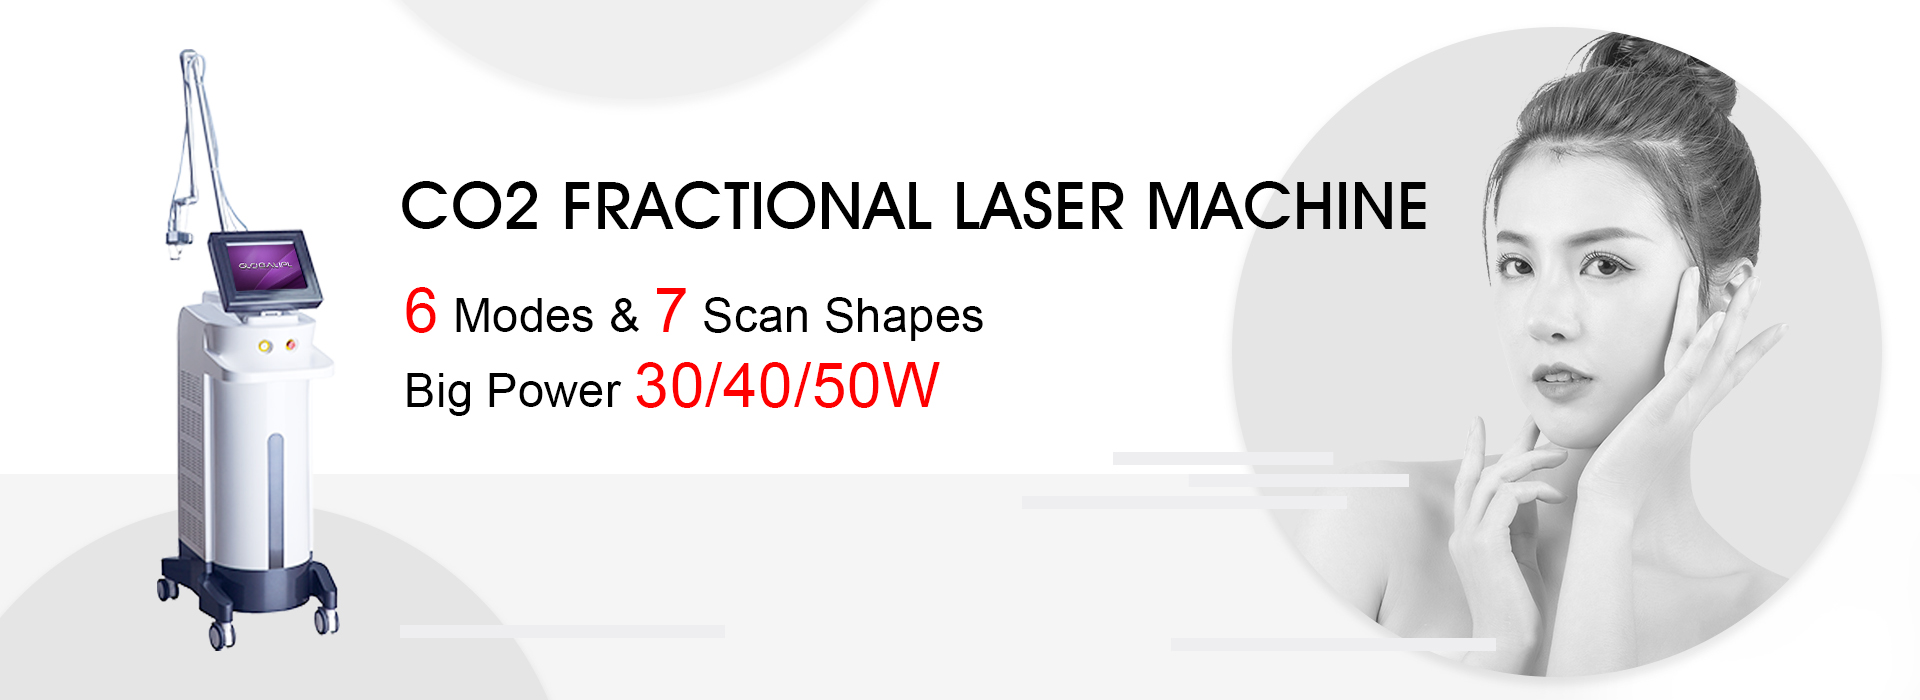 Fractional Laser Acne Removal Machine